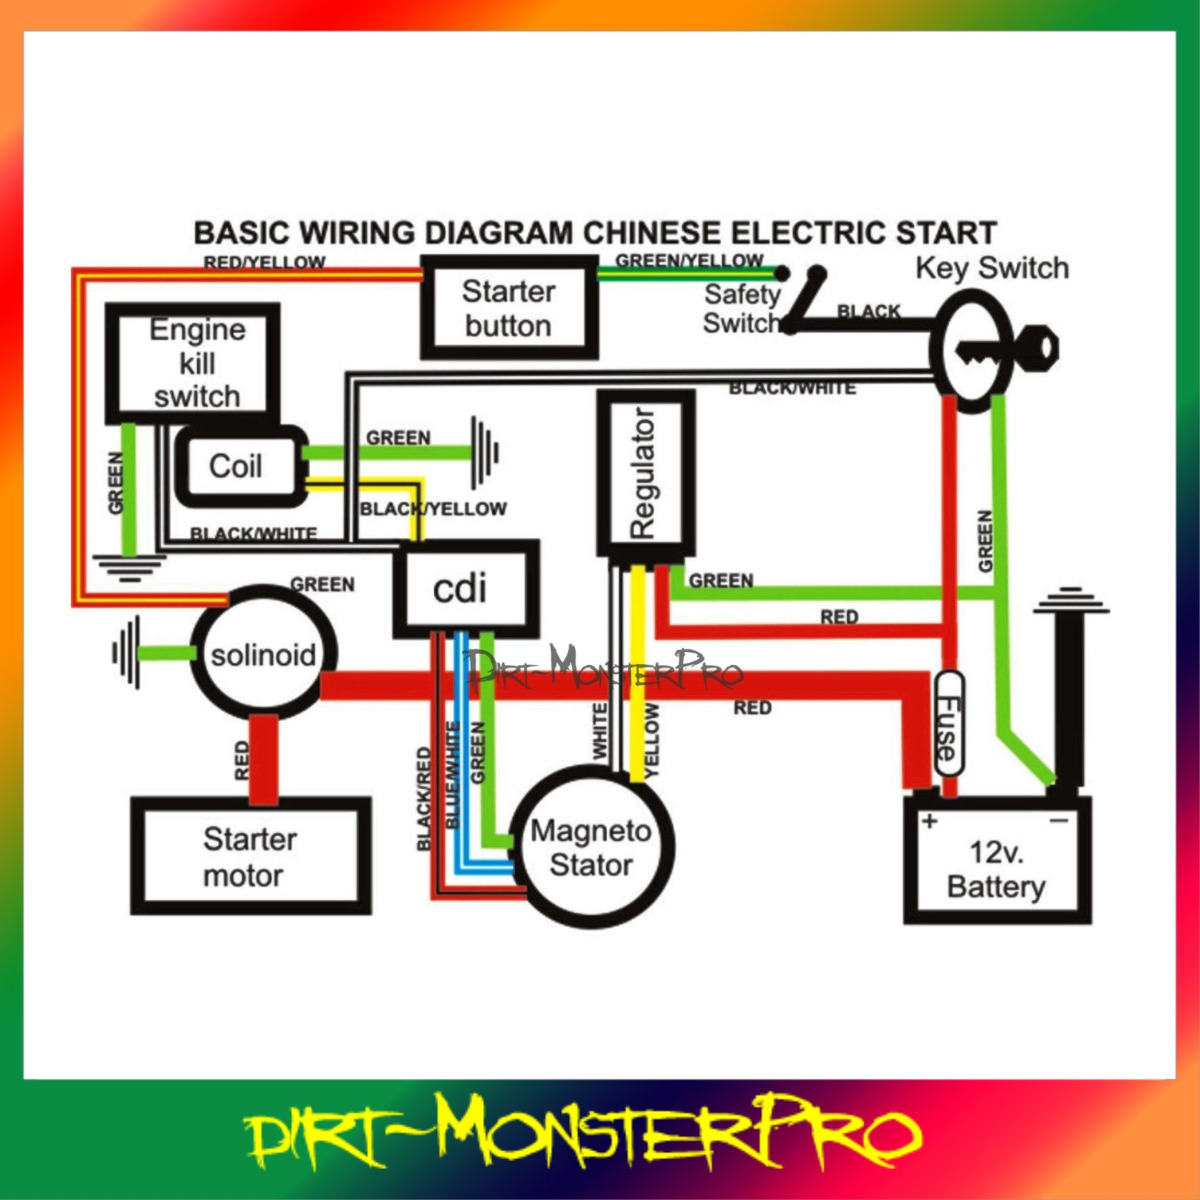 key card switch wiring diagram diagrams for light switches full electrics harness loom coil cdi 200 250 300cc